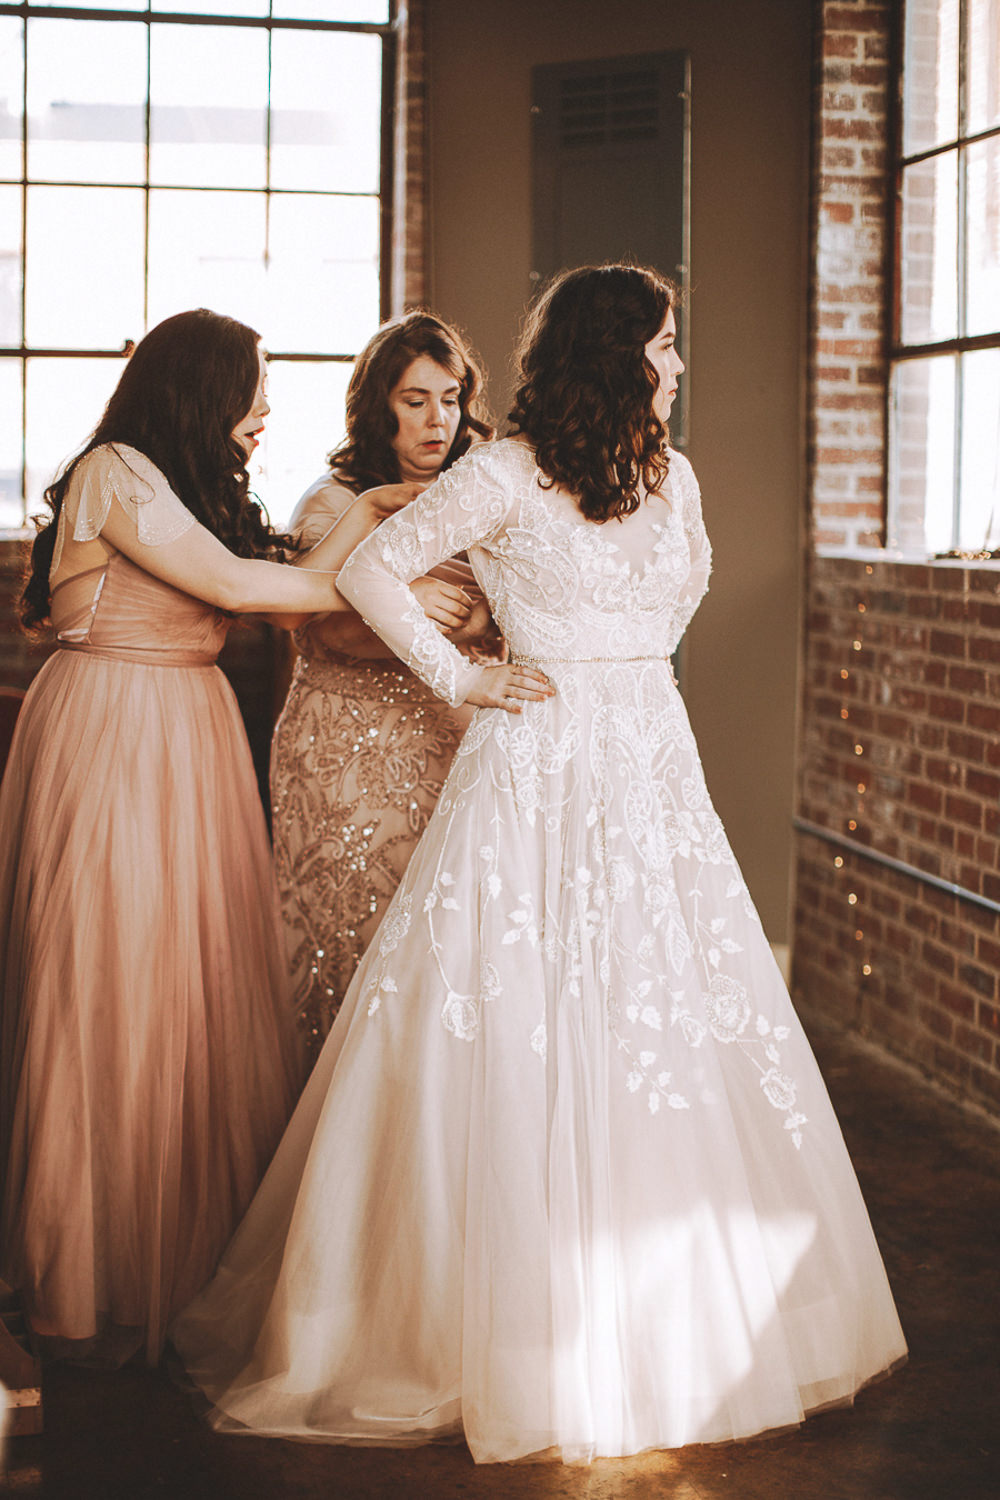 Dress Gown Bride Bridal Hayley Paige Lace Long Sleeves Train Industrial Distillery Wedding Nessa K Photography